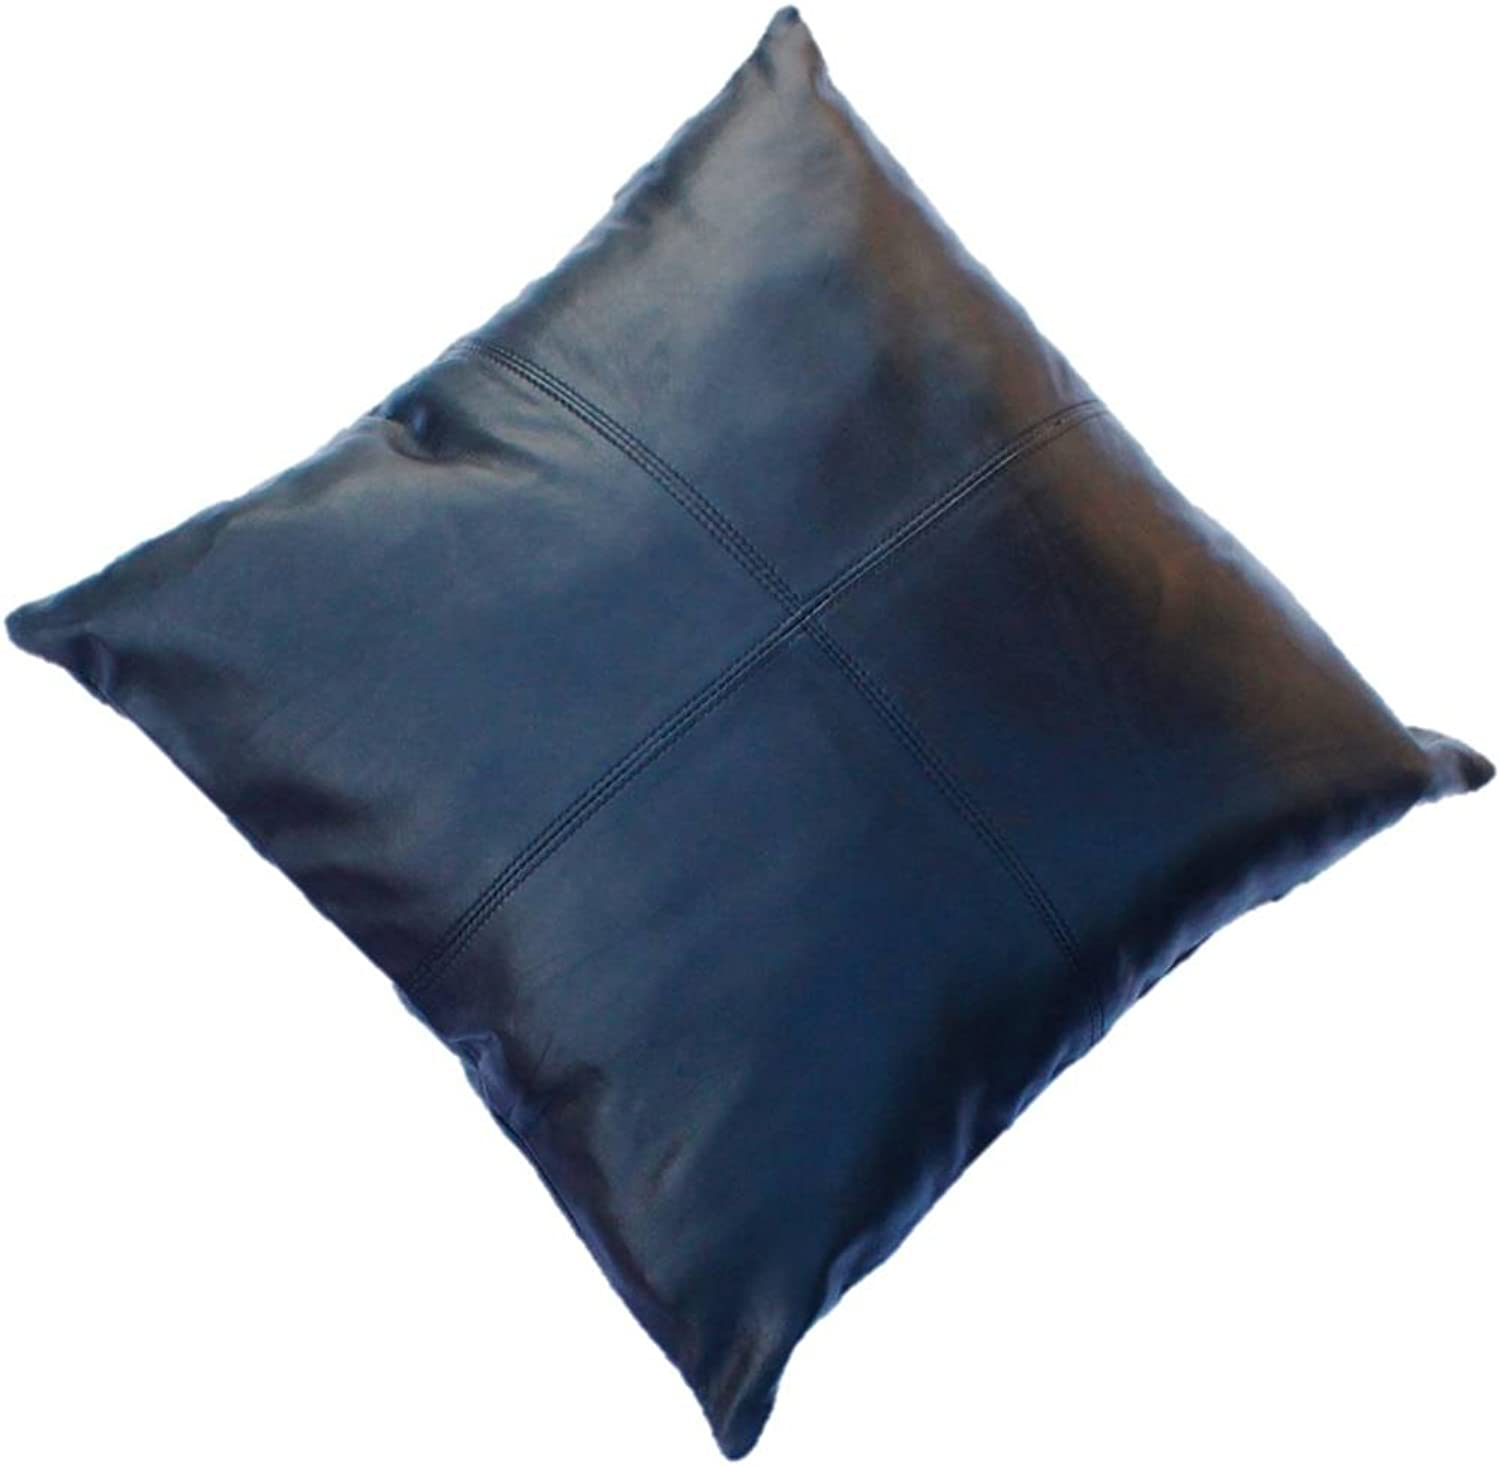 Aaron Craft Black Lambskin Leather Cushion Pillow Cover 18X18